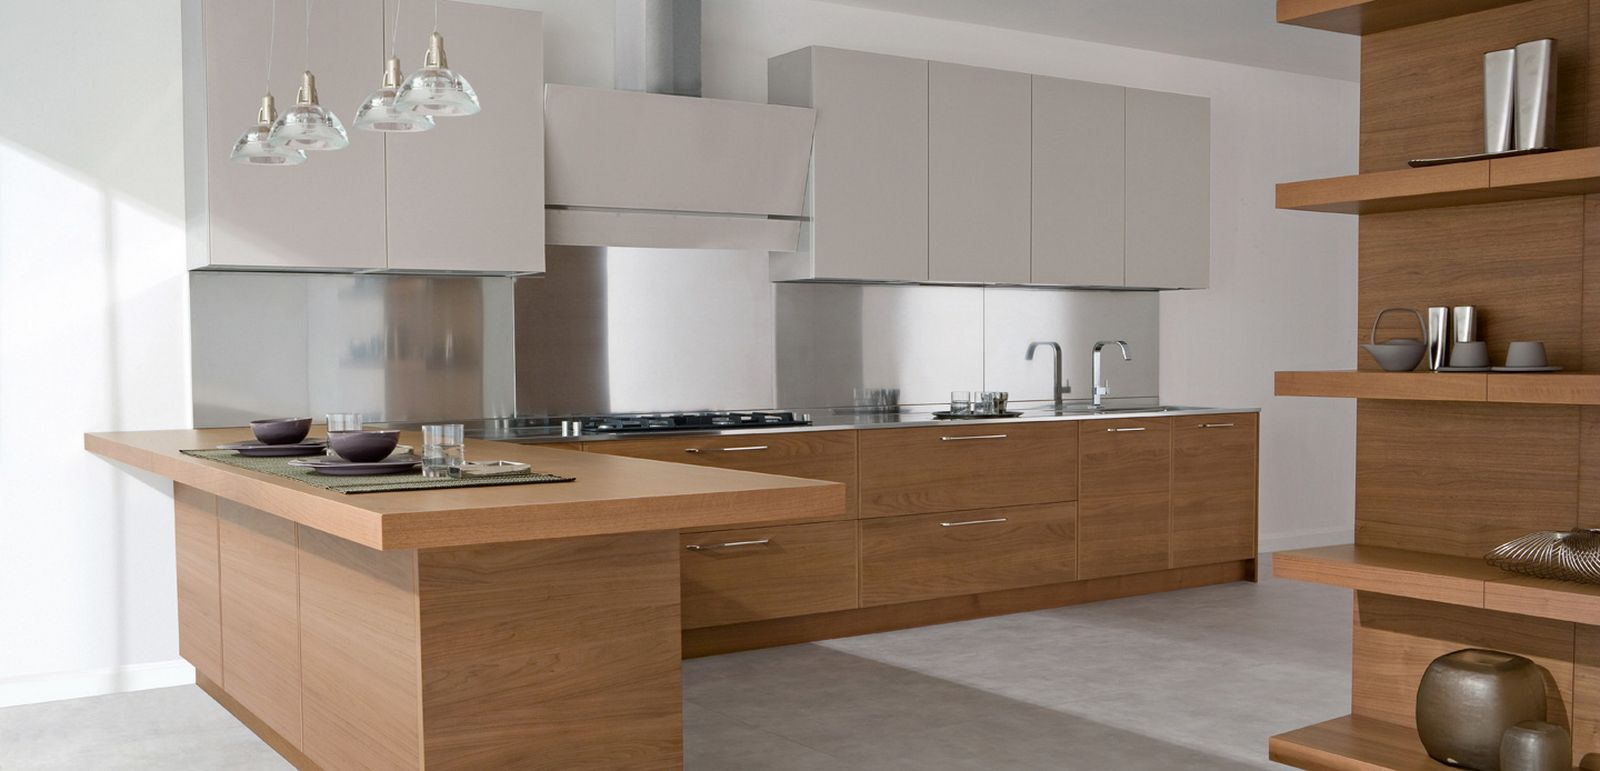 modern-kitchen-cabinets-design-as-kitchen-cabinet-ideas-in-the-latest-style-of-mesmerizing-design-ideas-from-Kitchen-41